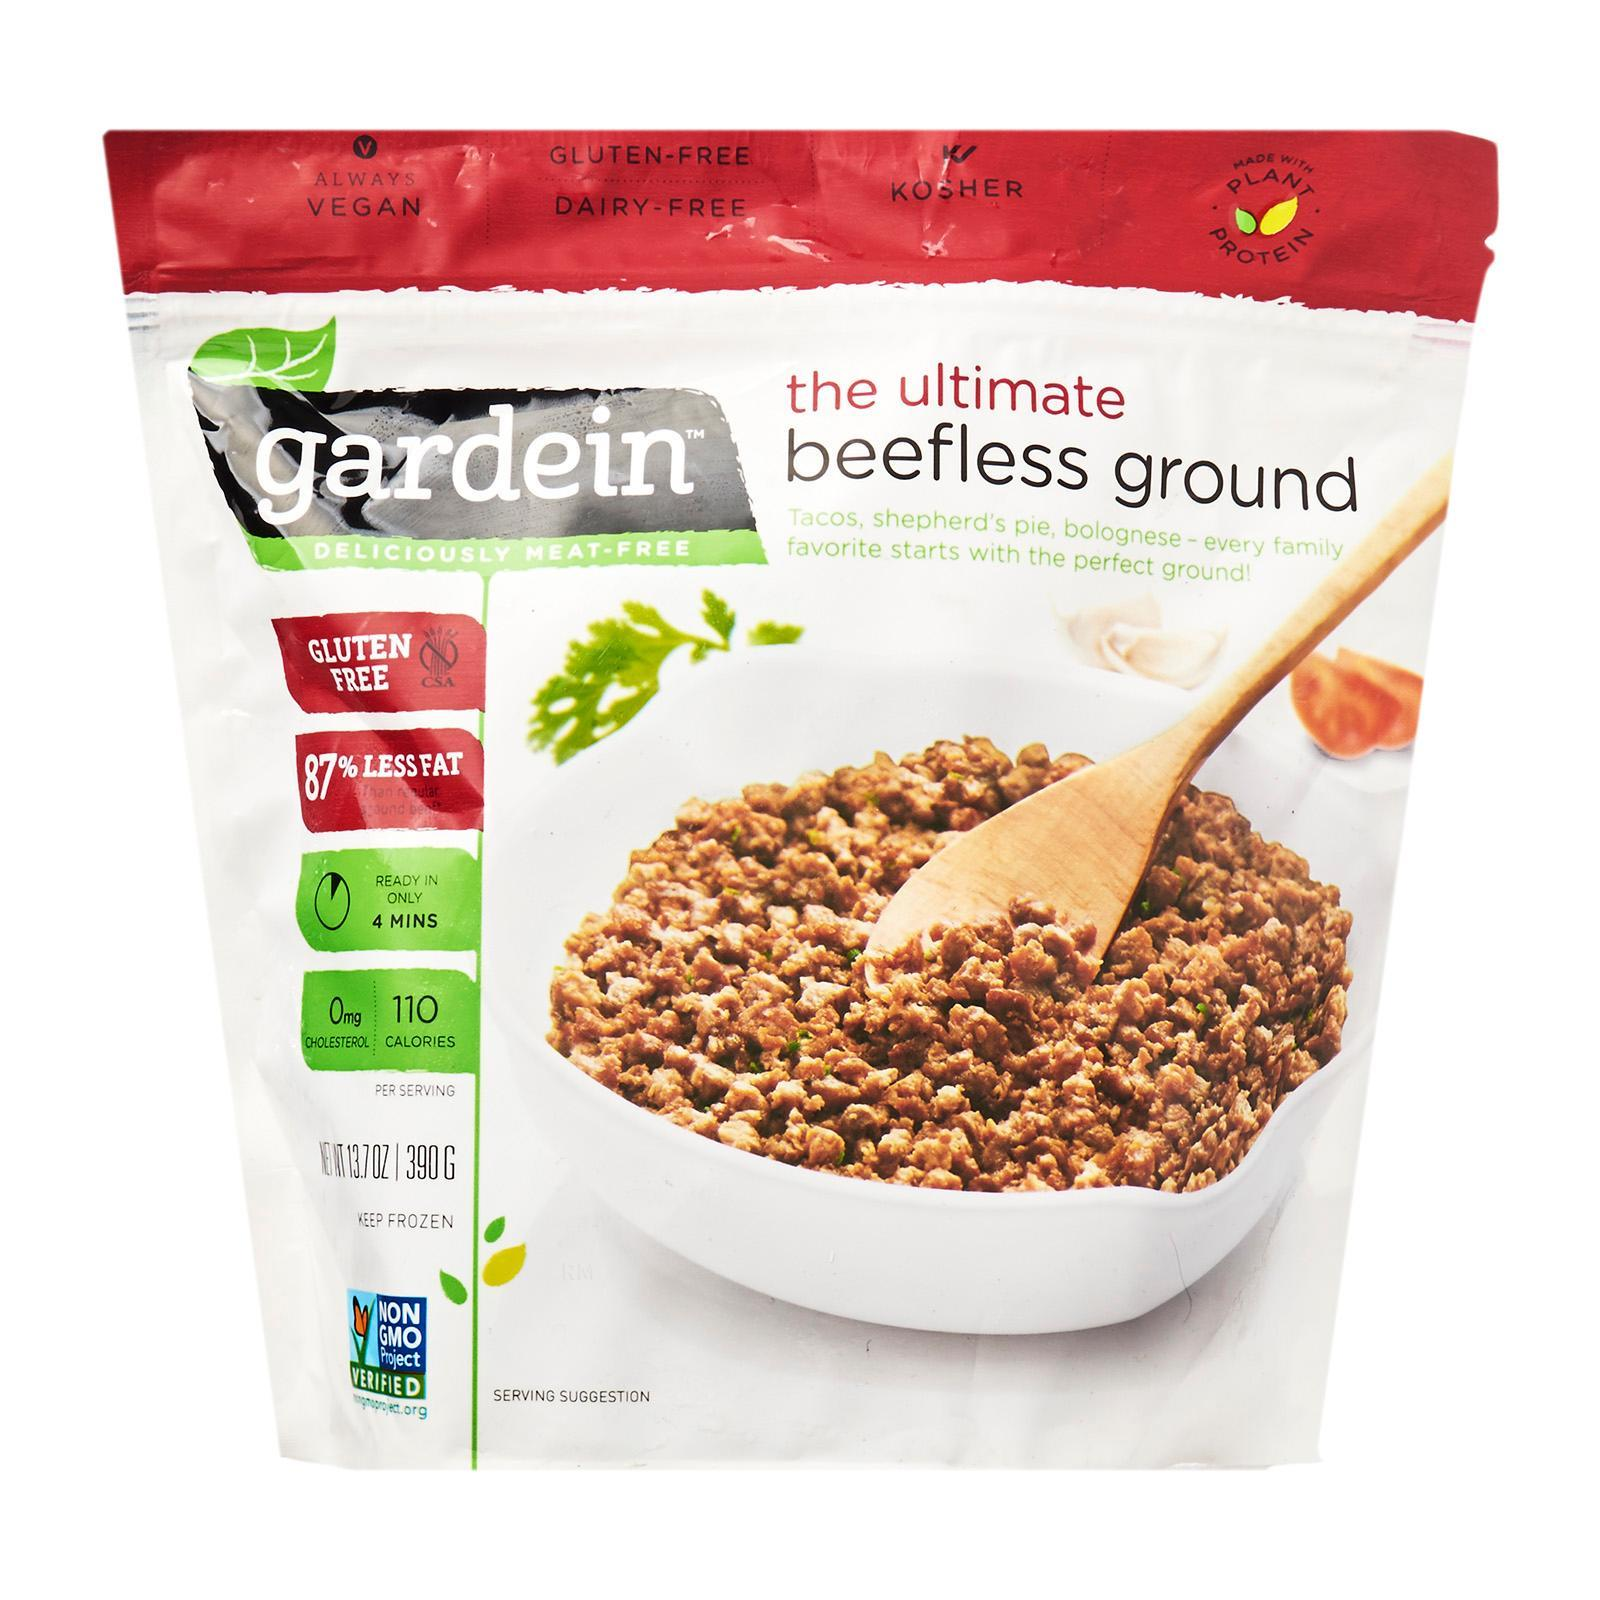 Gardein Gluten Free Vegetarian Beefless Ground - Frozen